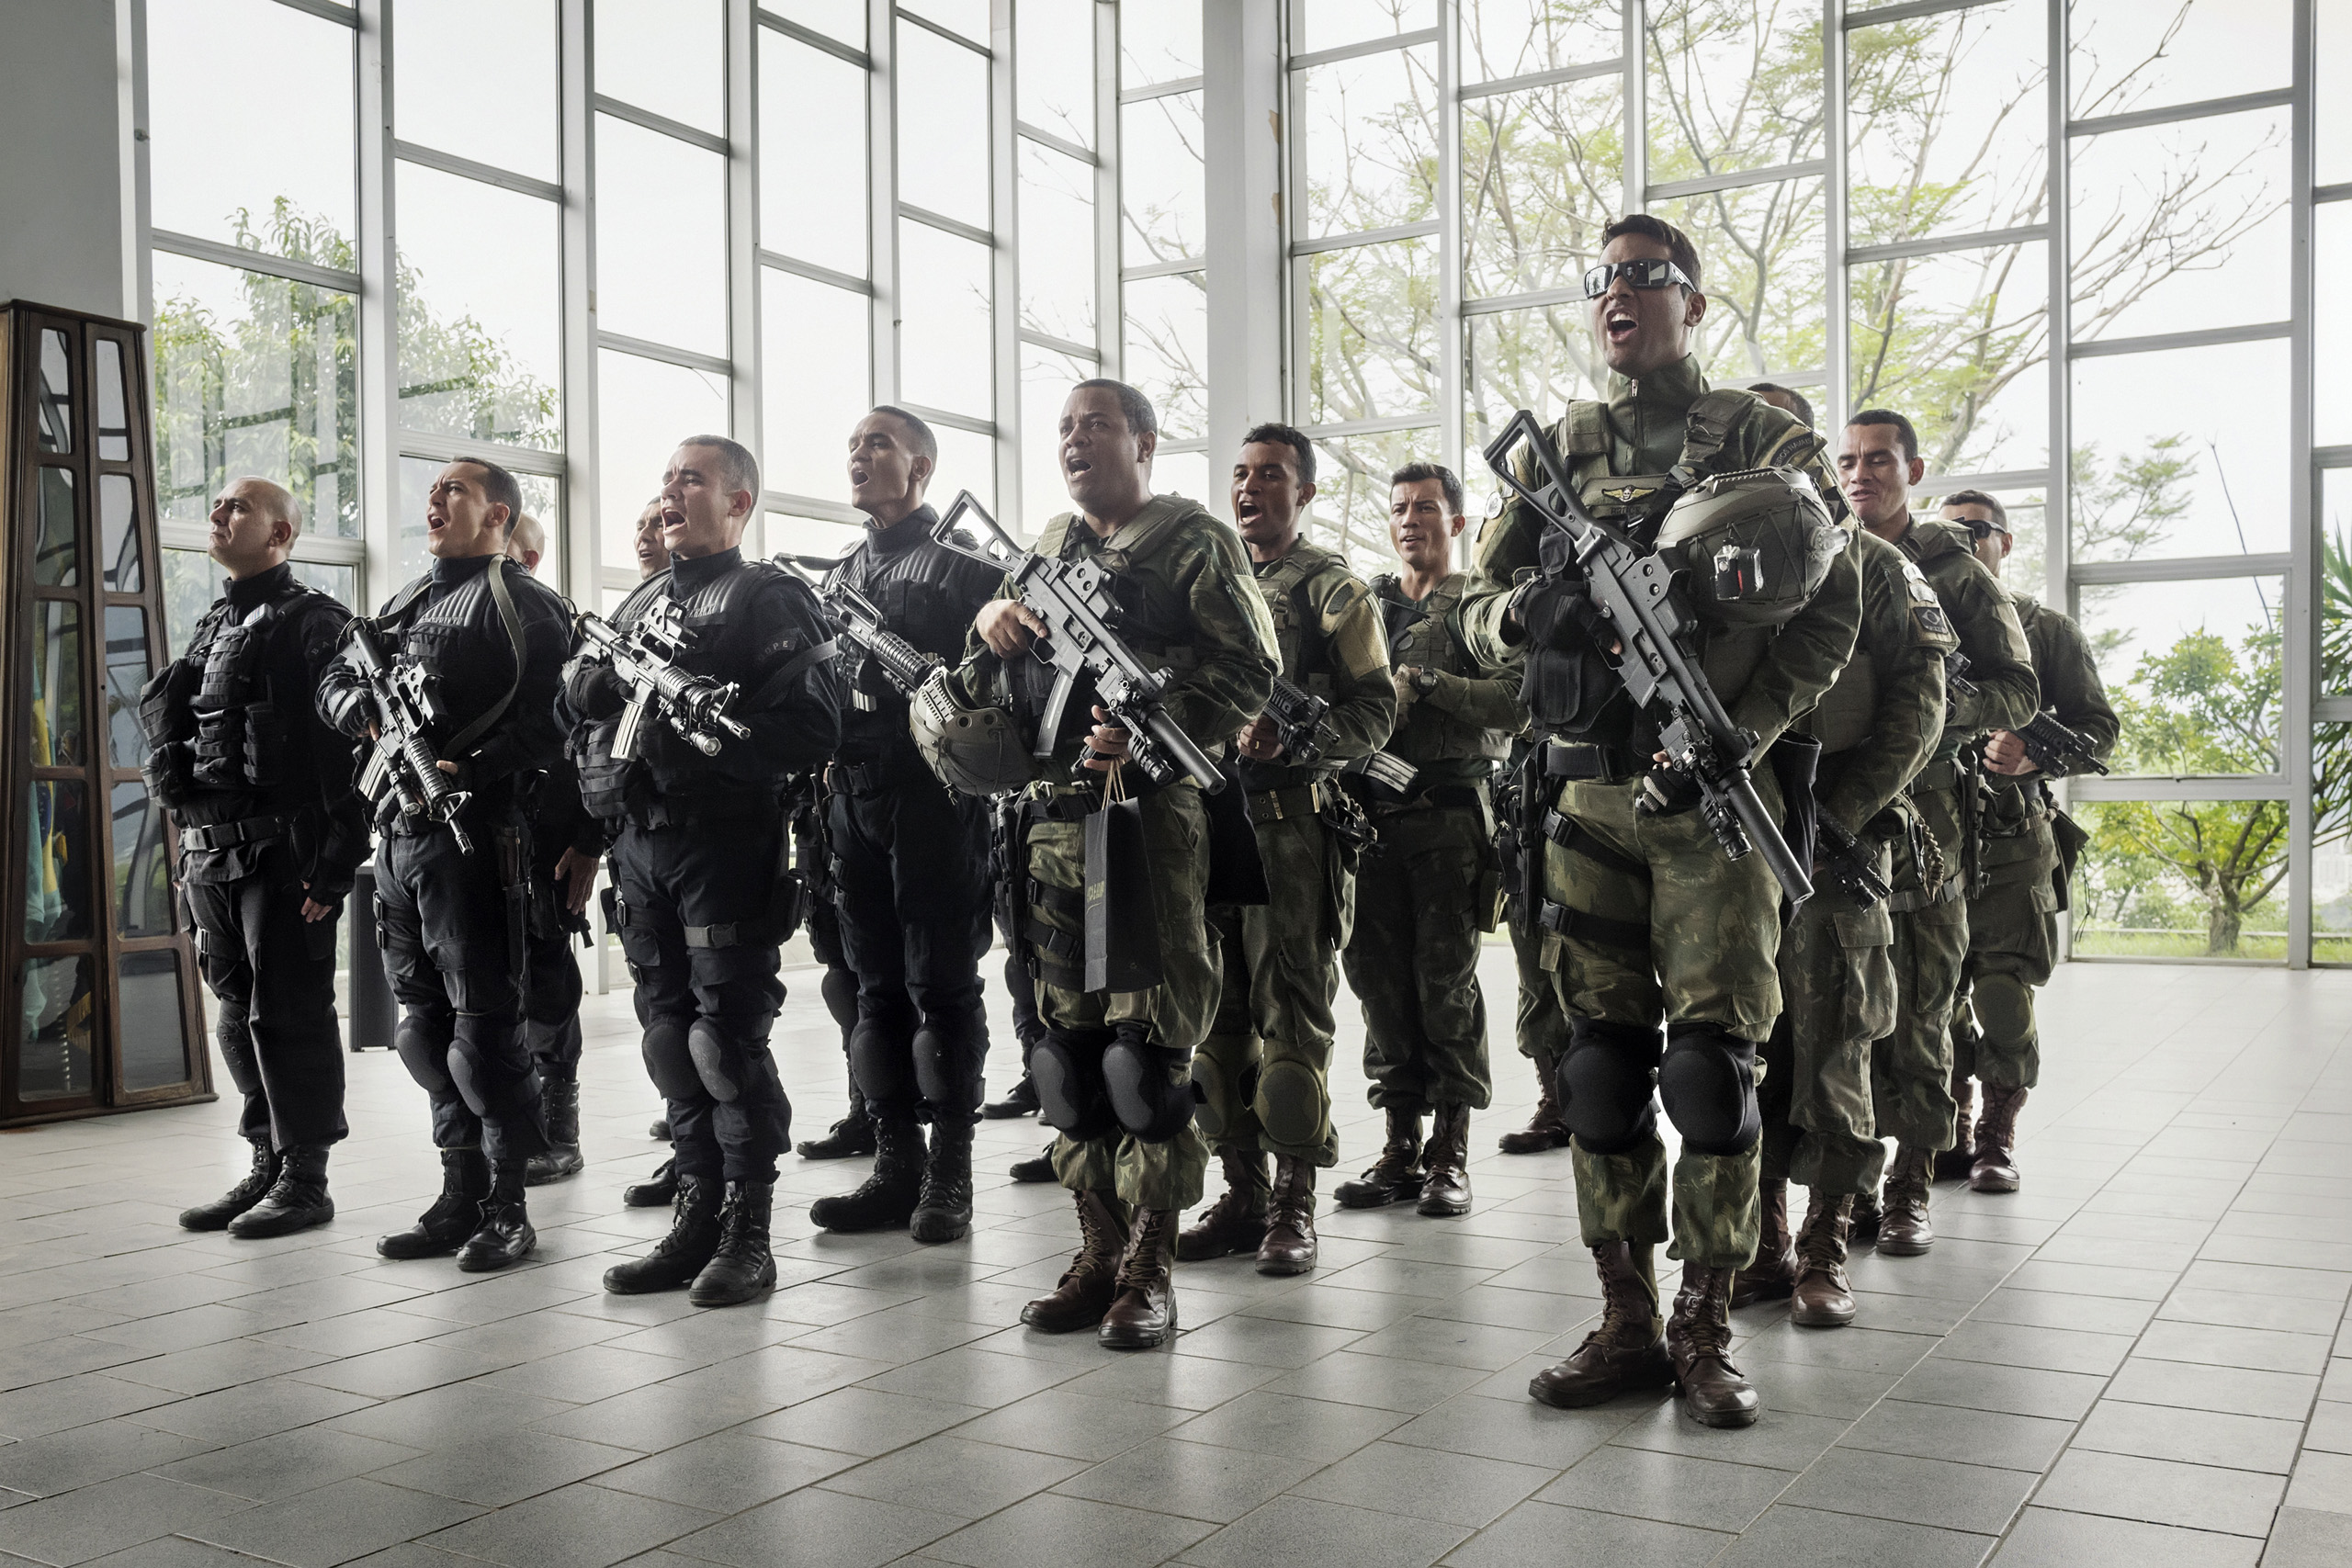 Members of the Battallion of the Special Police Operations (BOPE) during  a training ceremony.